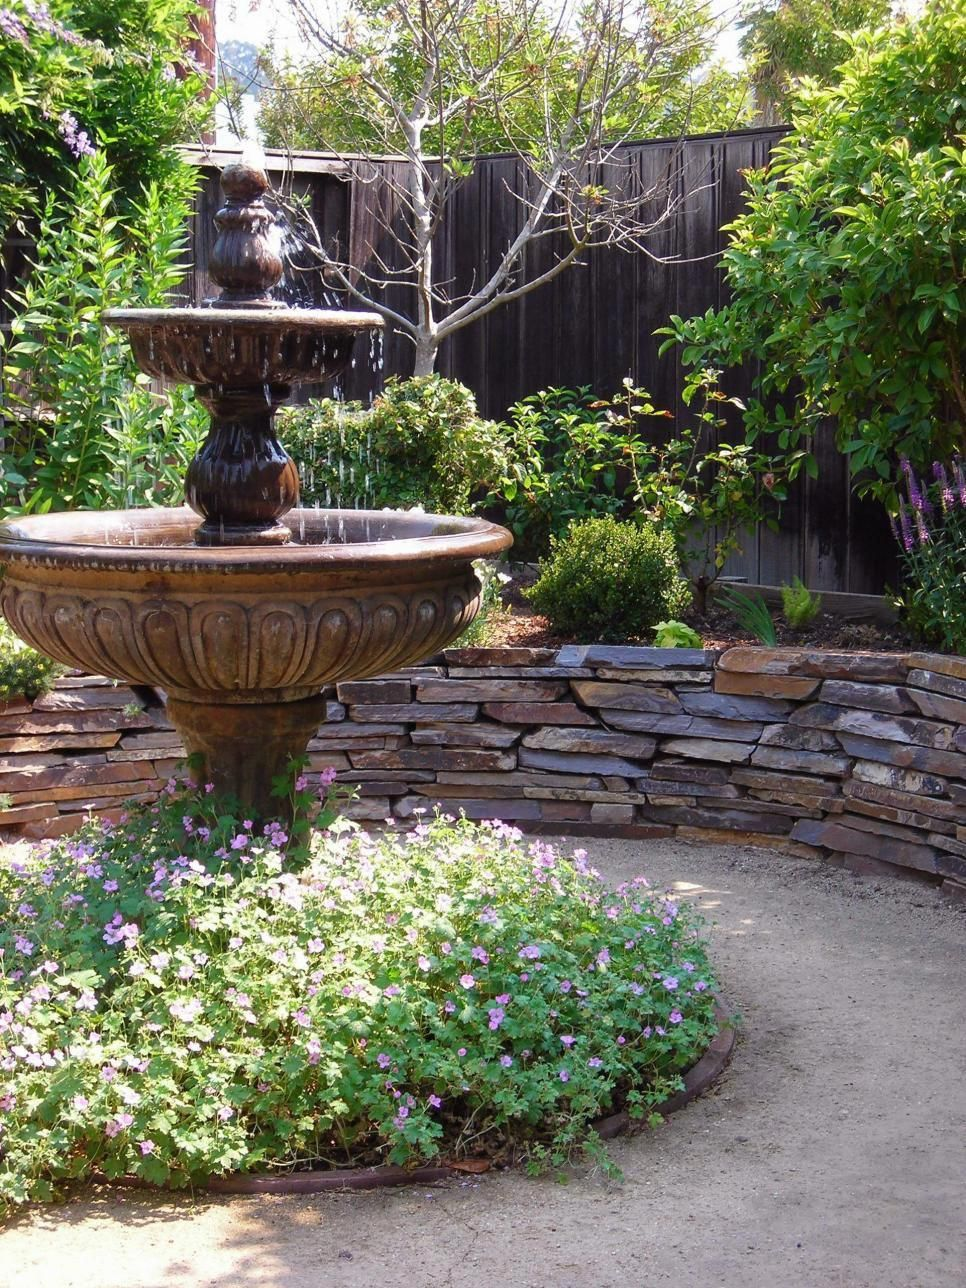 Hgtv Com Shows You How To Add A Water Feature To Your Landscape To Add Beauty And Attract Landscaping With Fountains Water Fountains Outdoor Fountains Outdoor